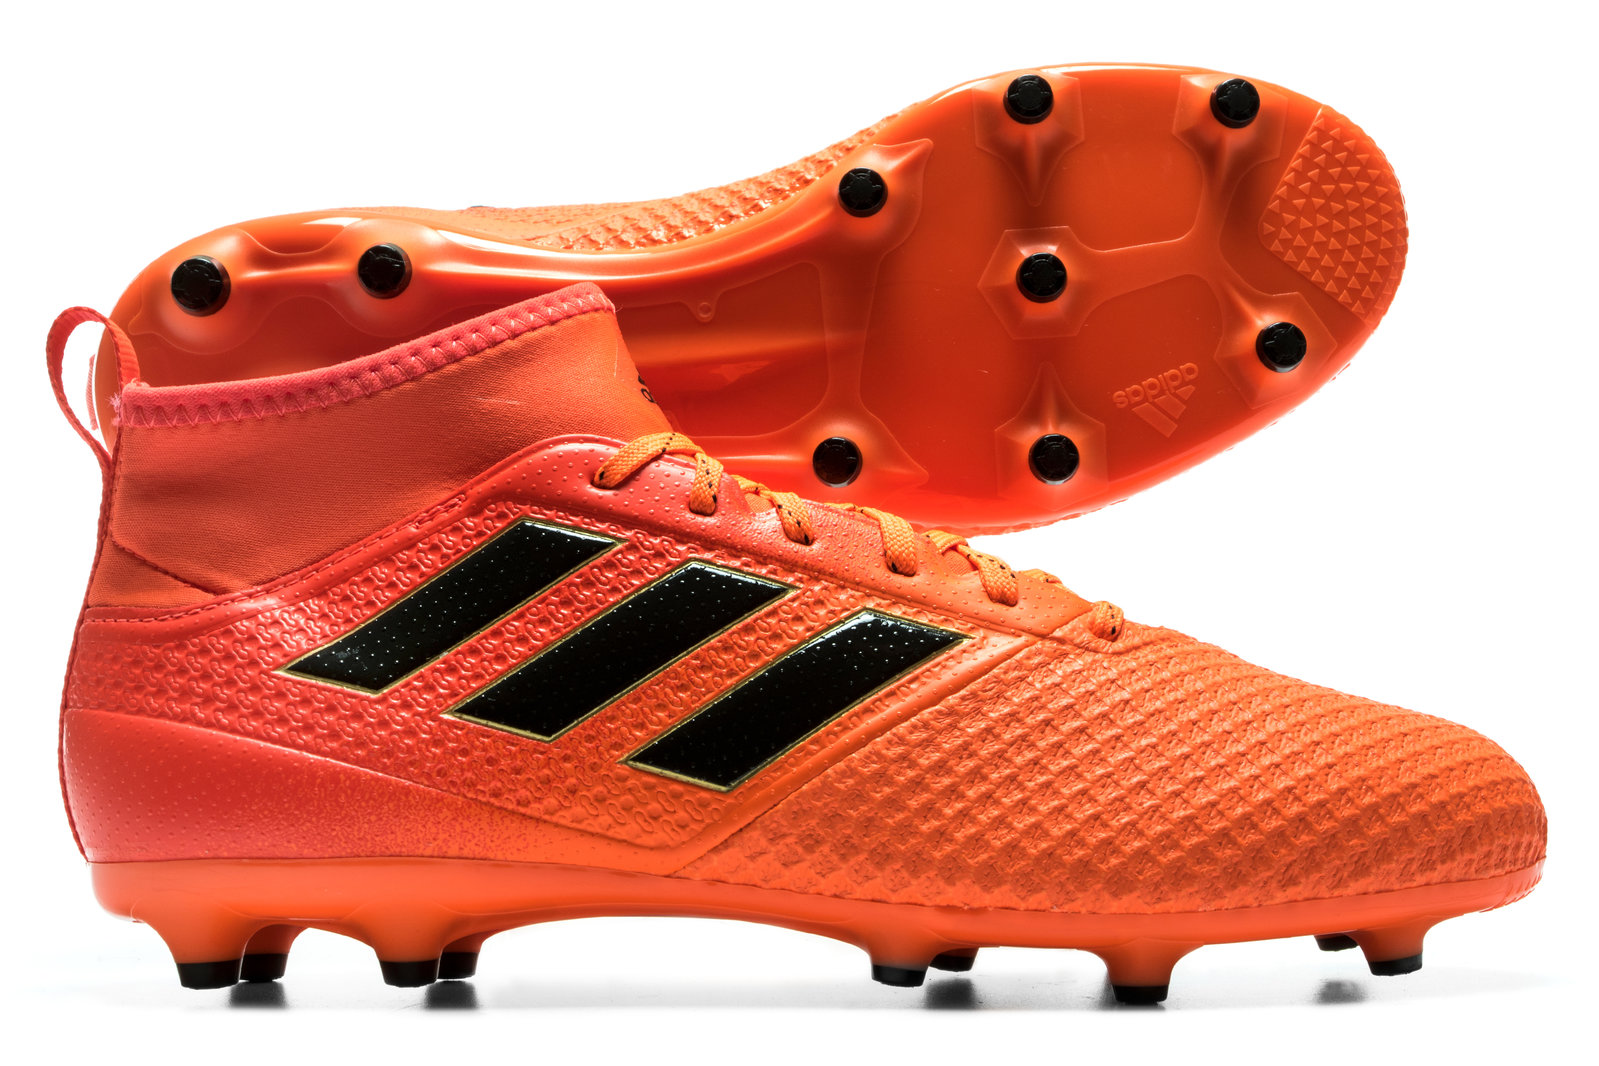 Image of Ace 17.3 Primemesh FG Football Boots